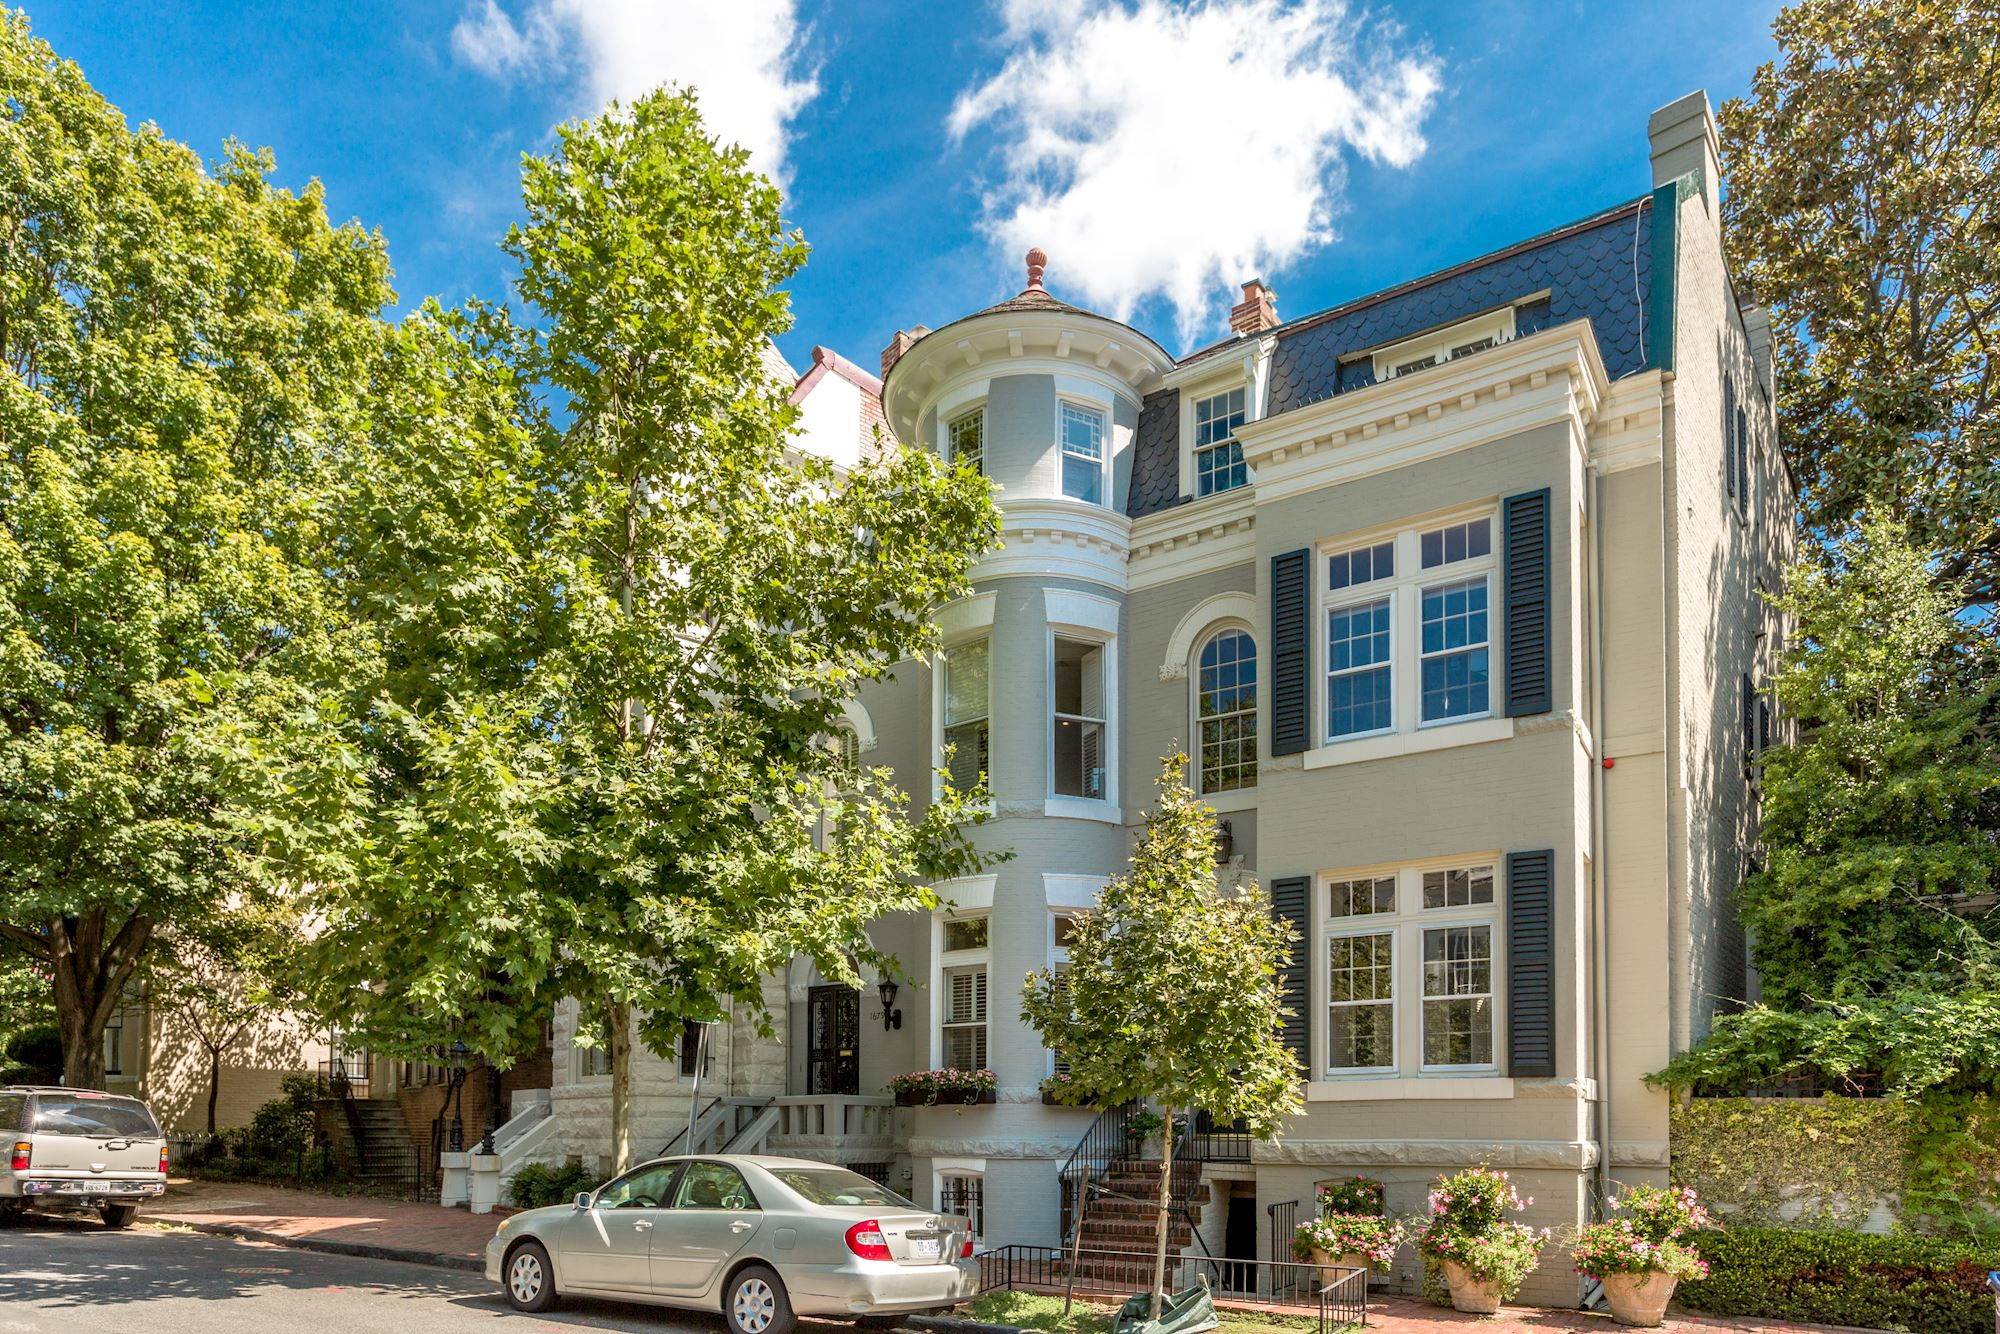 Georgetown in Washington, D.C., is the setting for this elegant Queen Ann townhouse, built at the turn of the 20th Century.